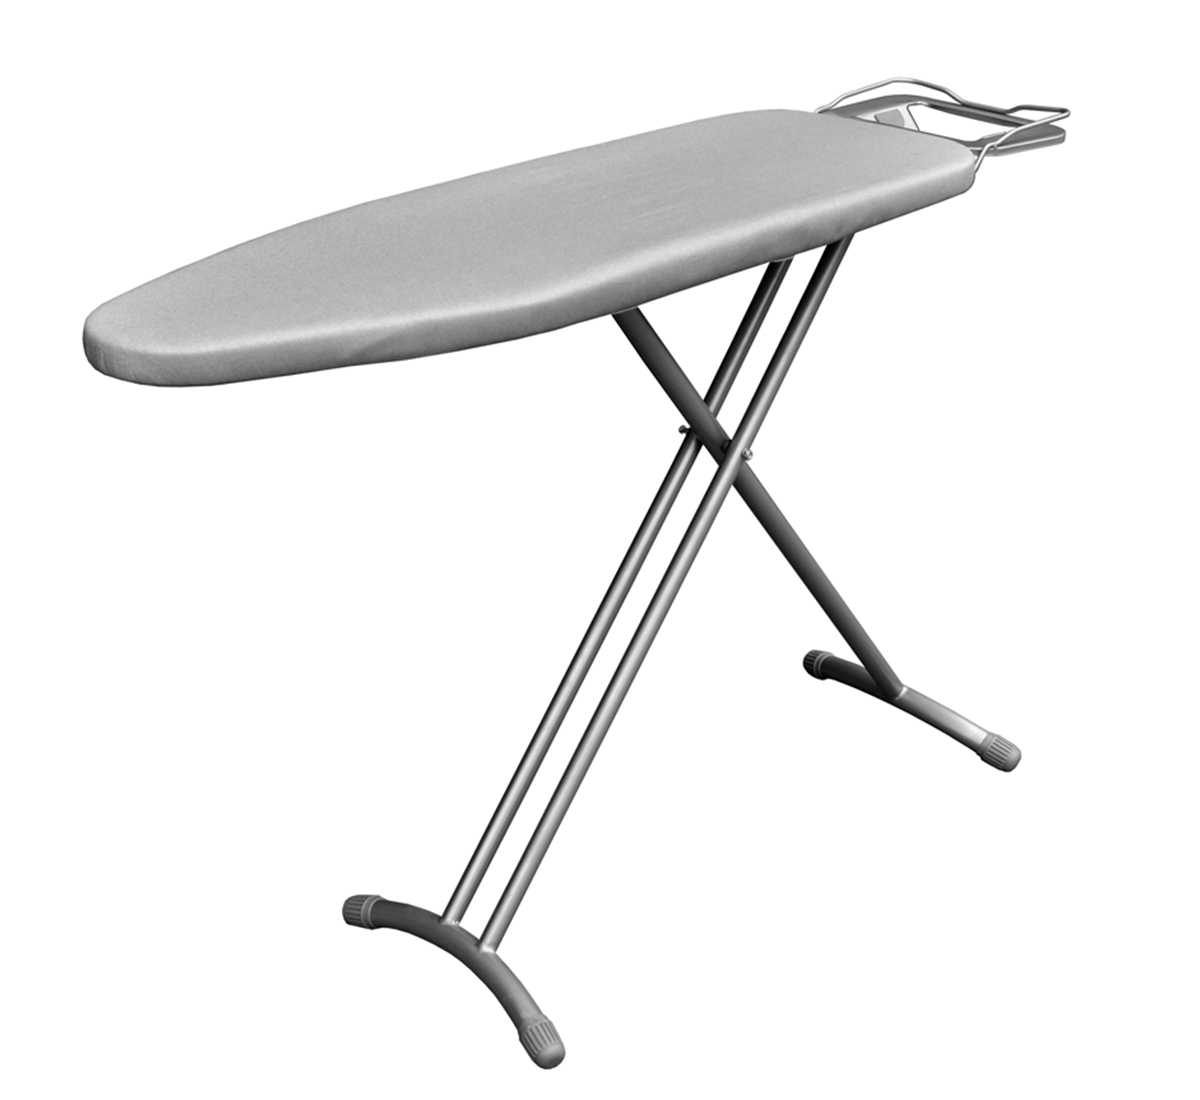 Extra Large Ironing Board with Ironing Rest, Height Adjustment